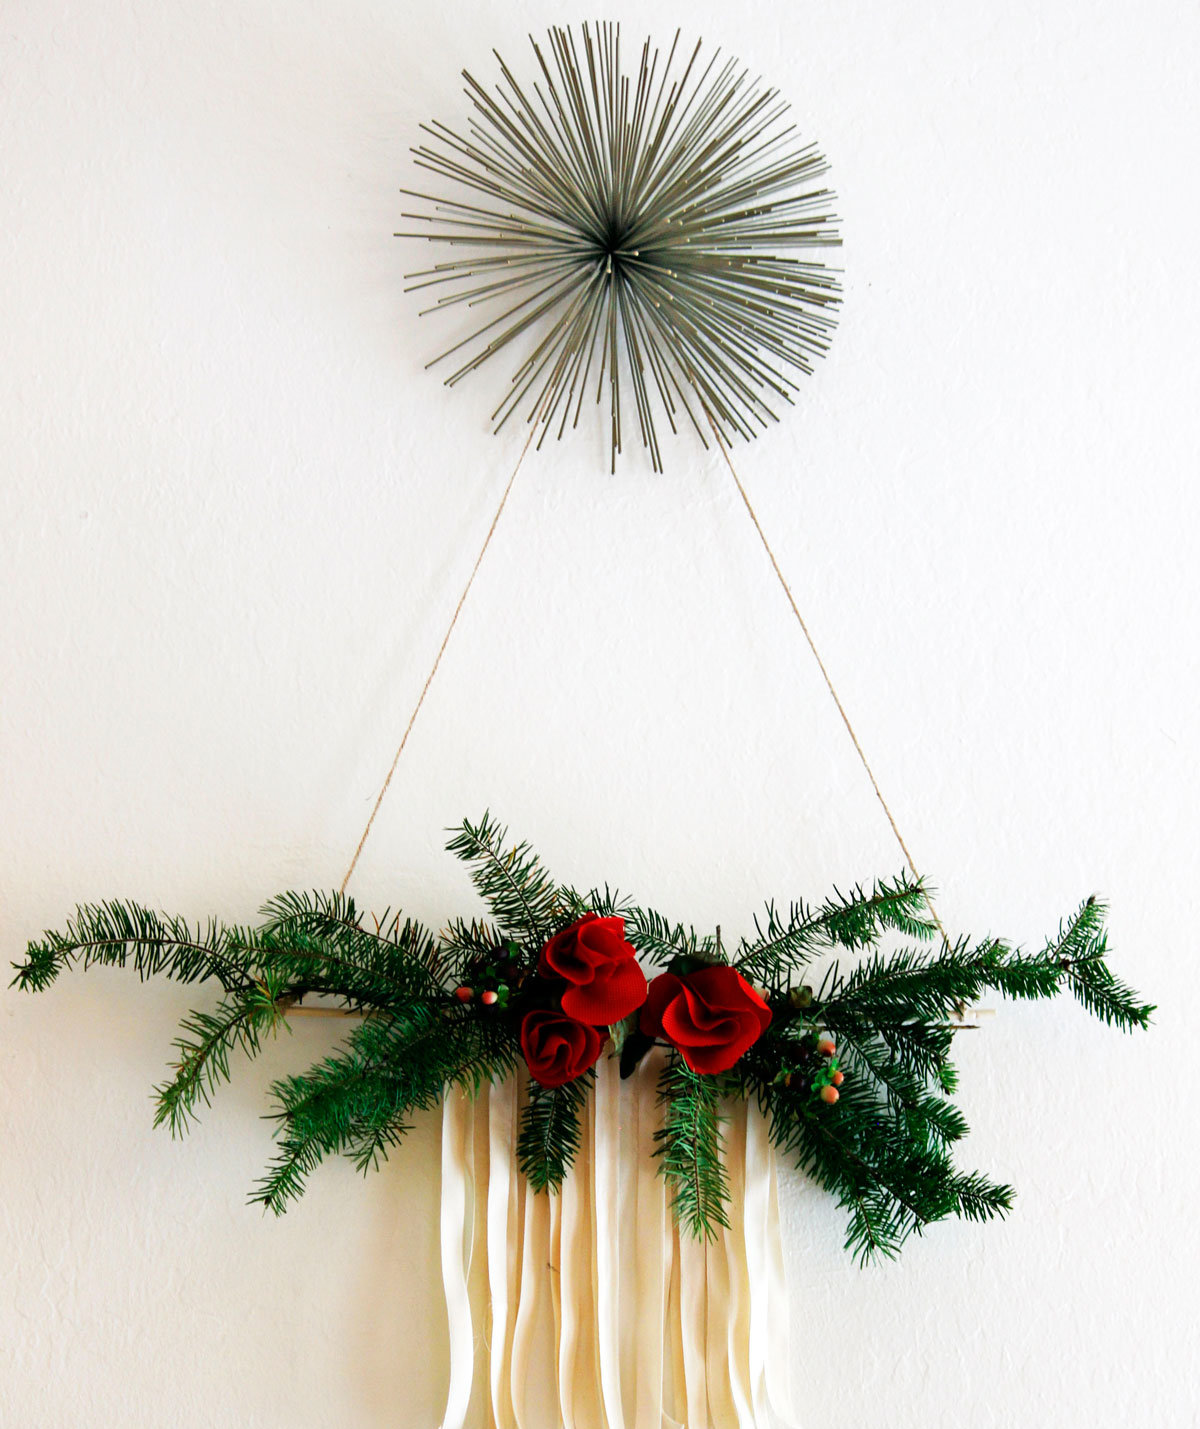 Christmas Tree Facebook Cover Photo: How To Decorate For Christmas Without A